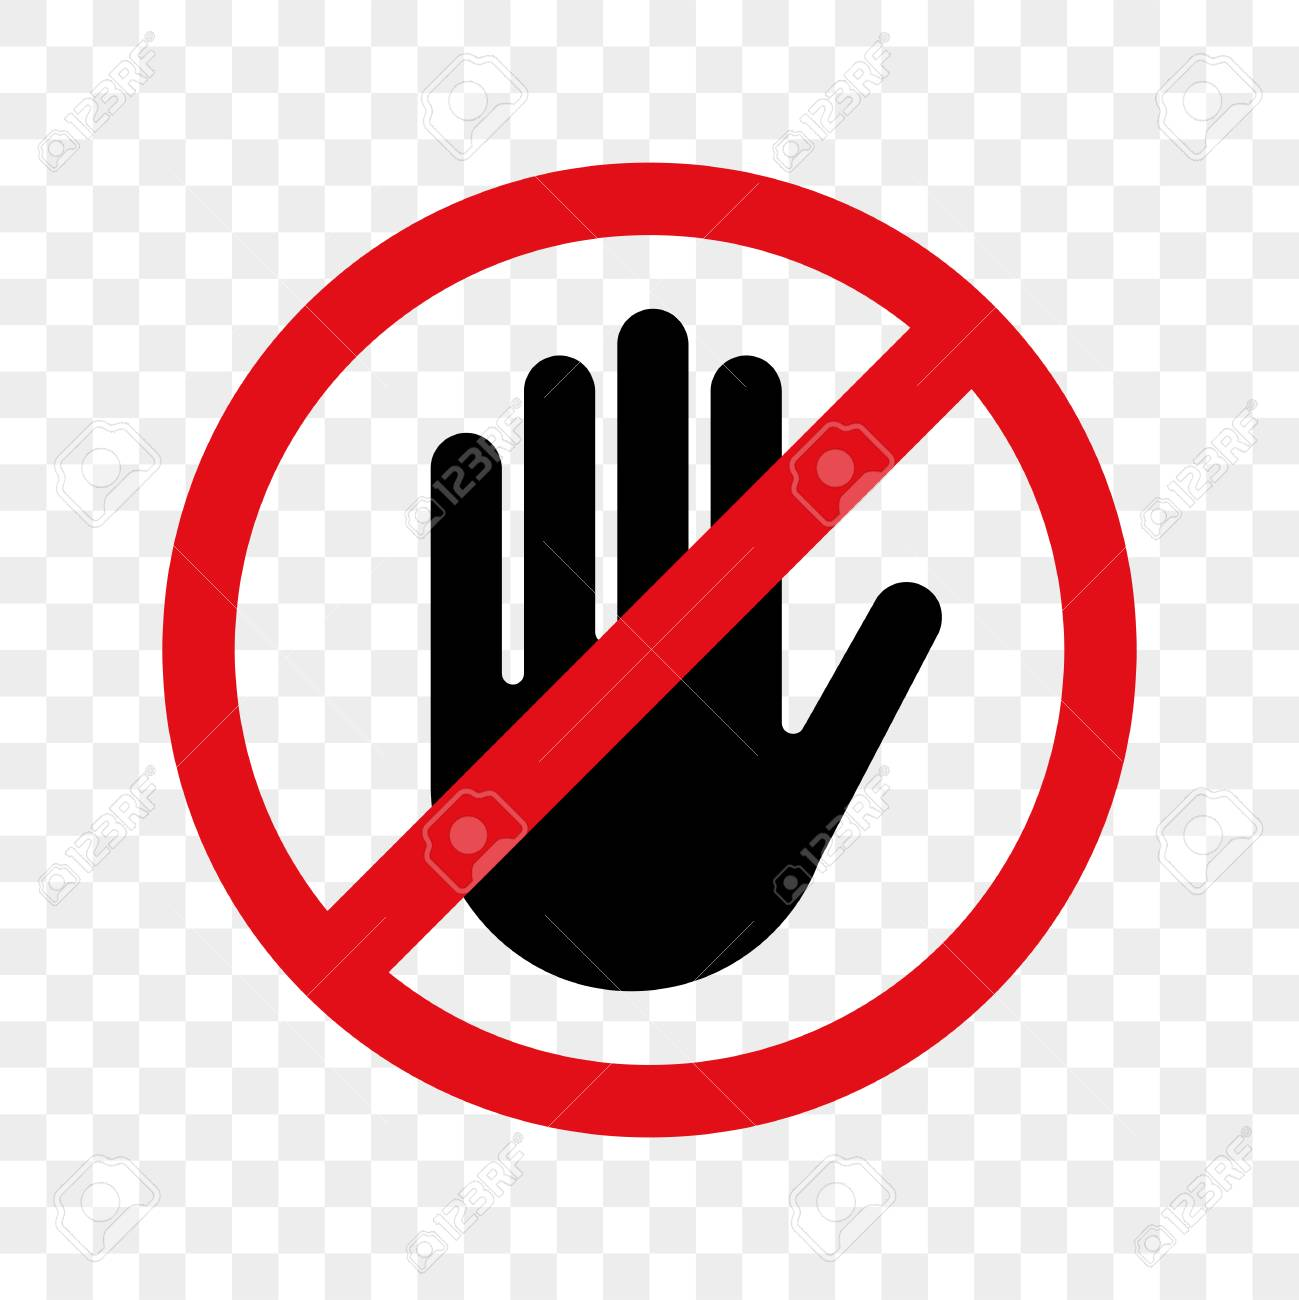 Stop hand vector warning icon for no entry or don't touch sign. - 100248473